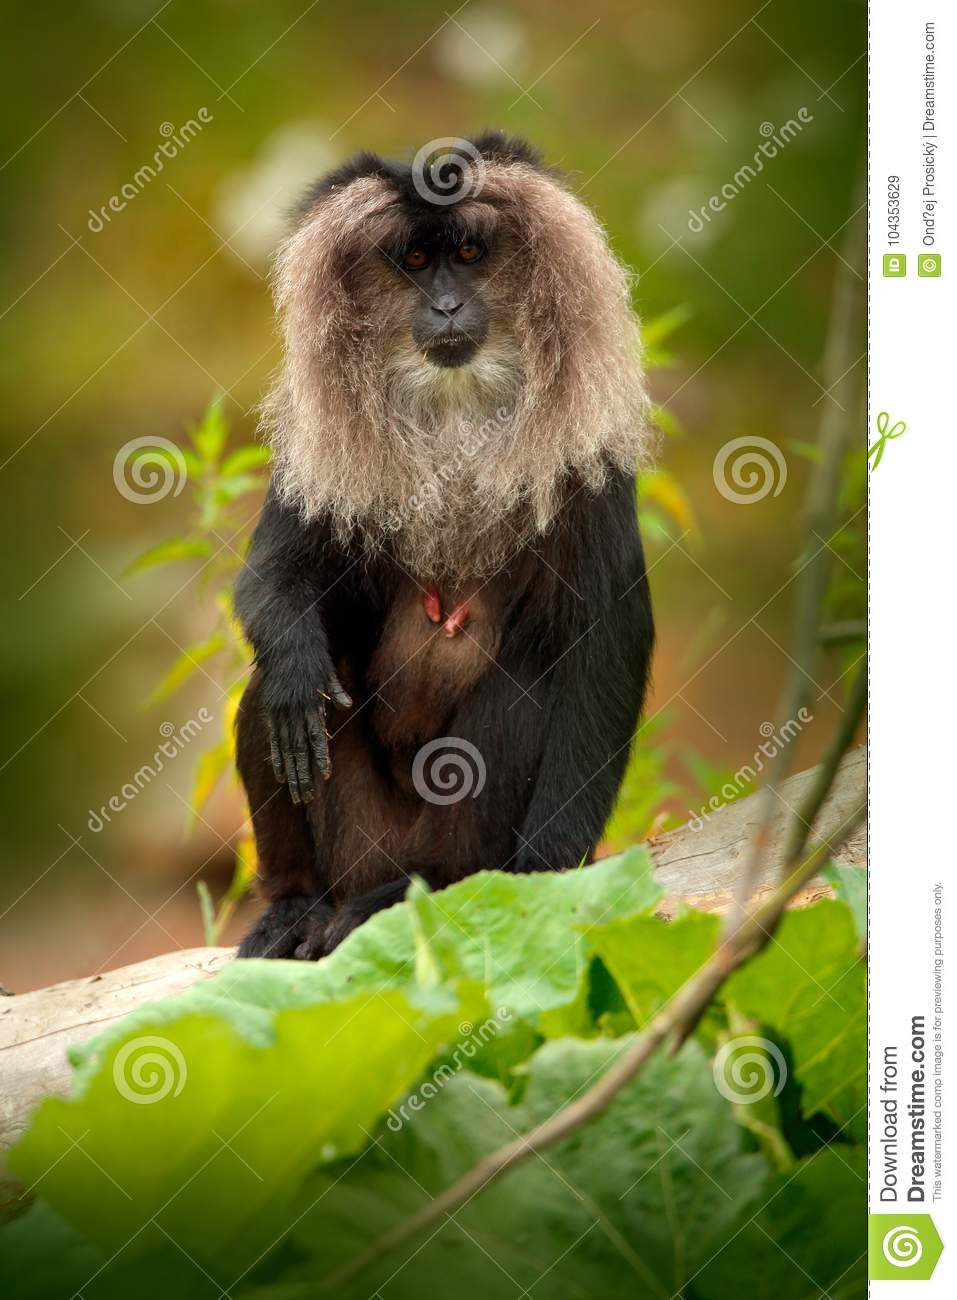 Monkey Lion-tailed Macaque, Macaca silenus, animal on green tropic forest habitat. Lion-tailed Macaque, endemic to the Western Gha